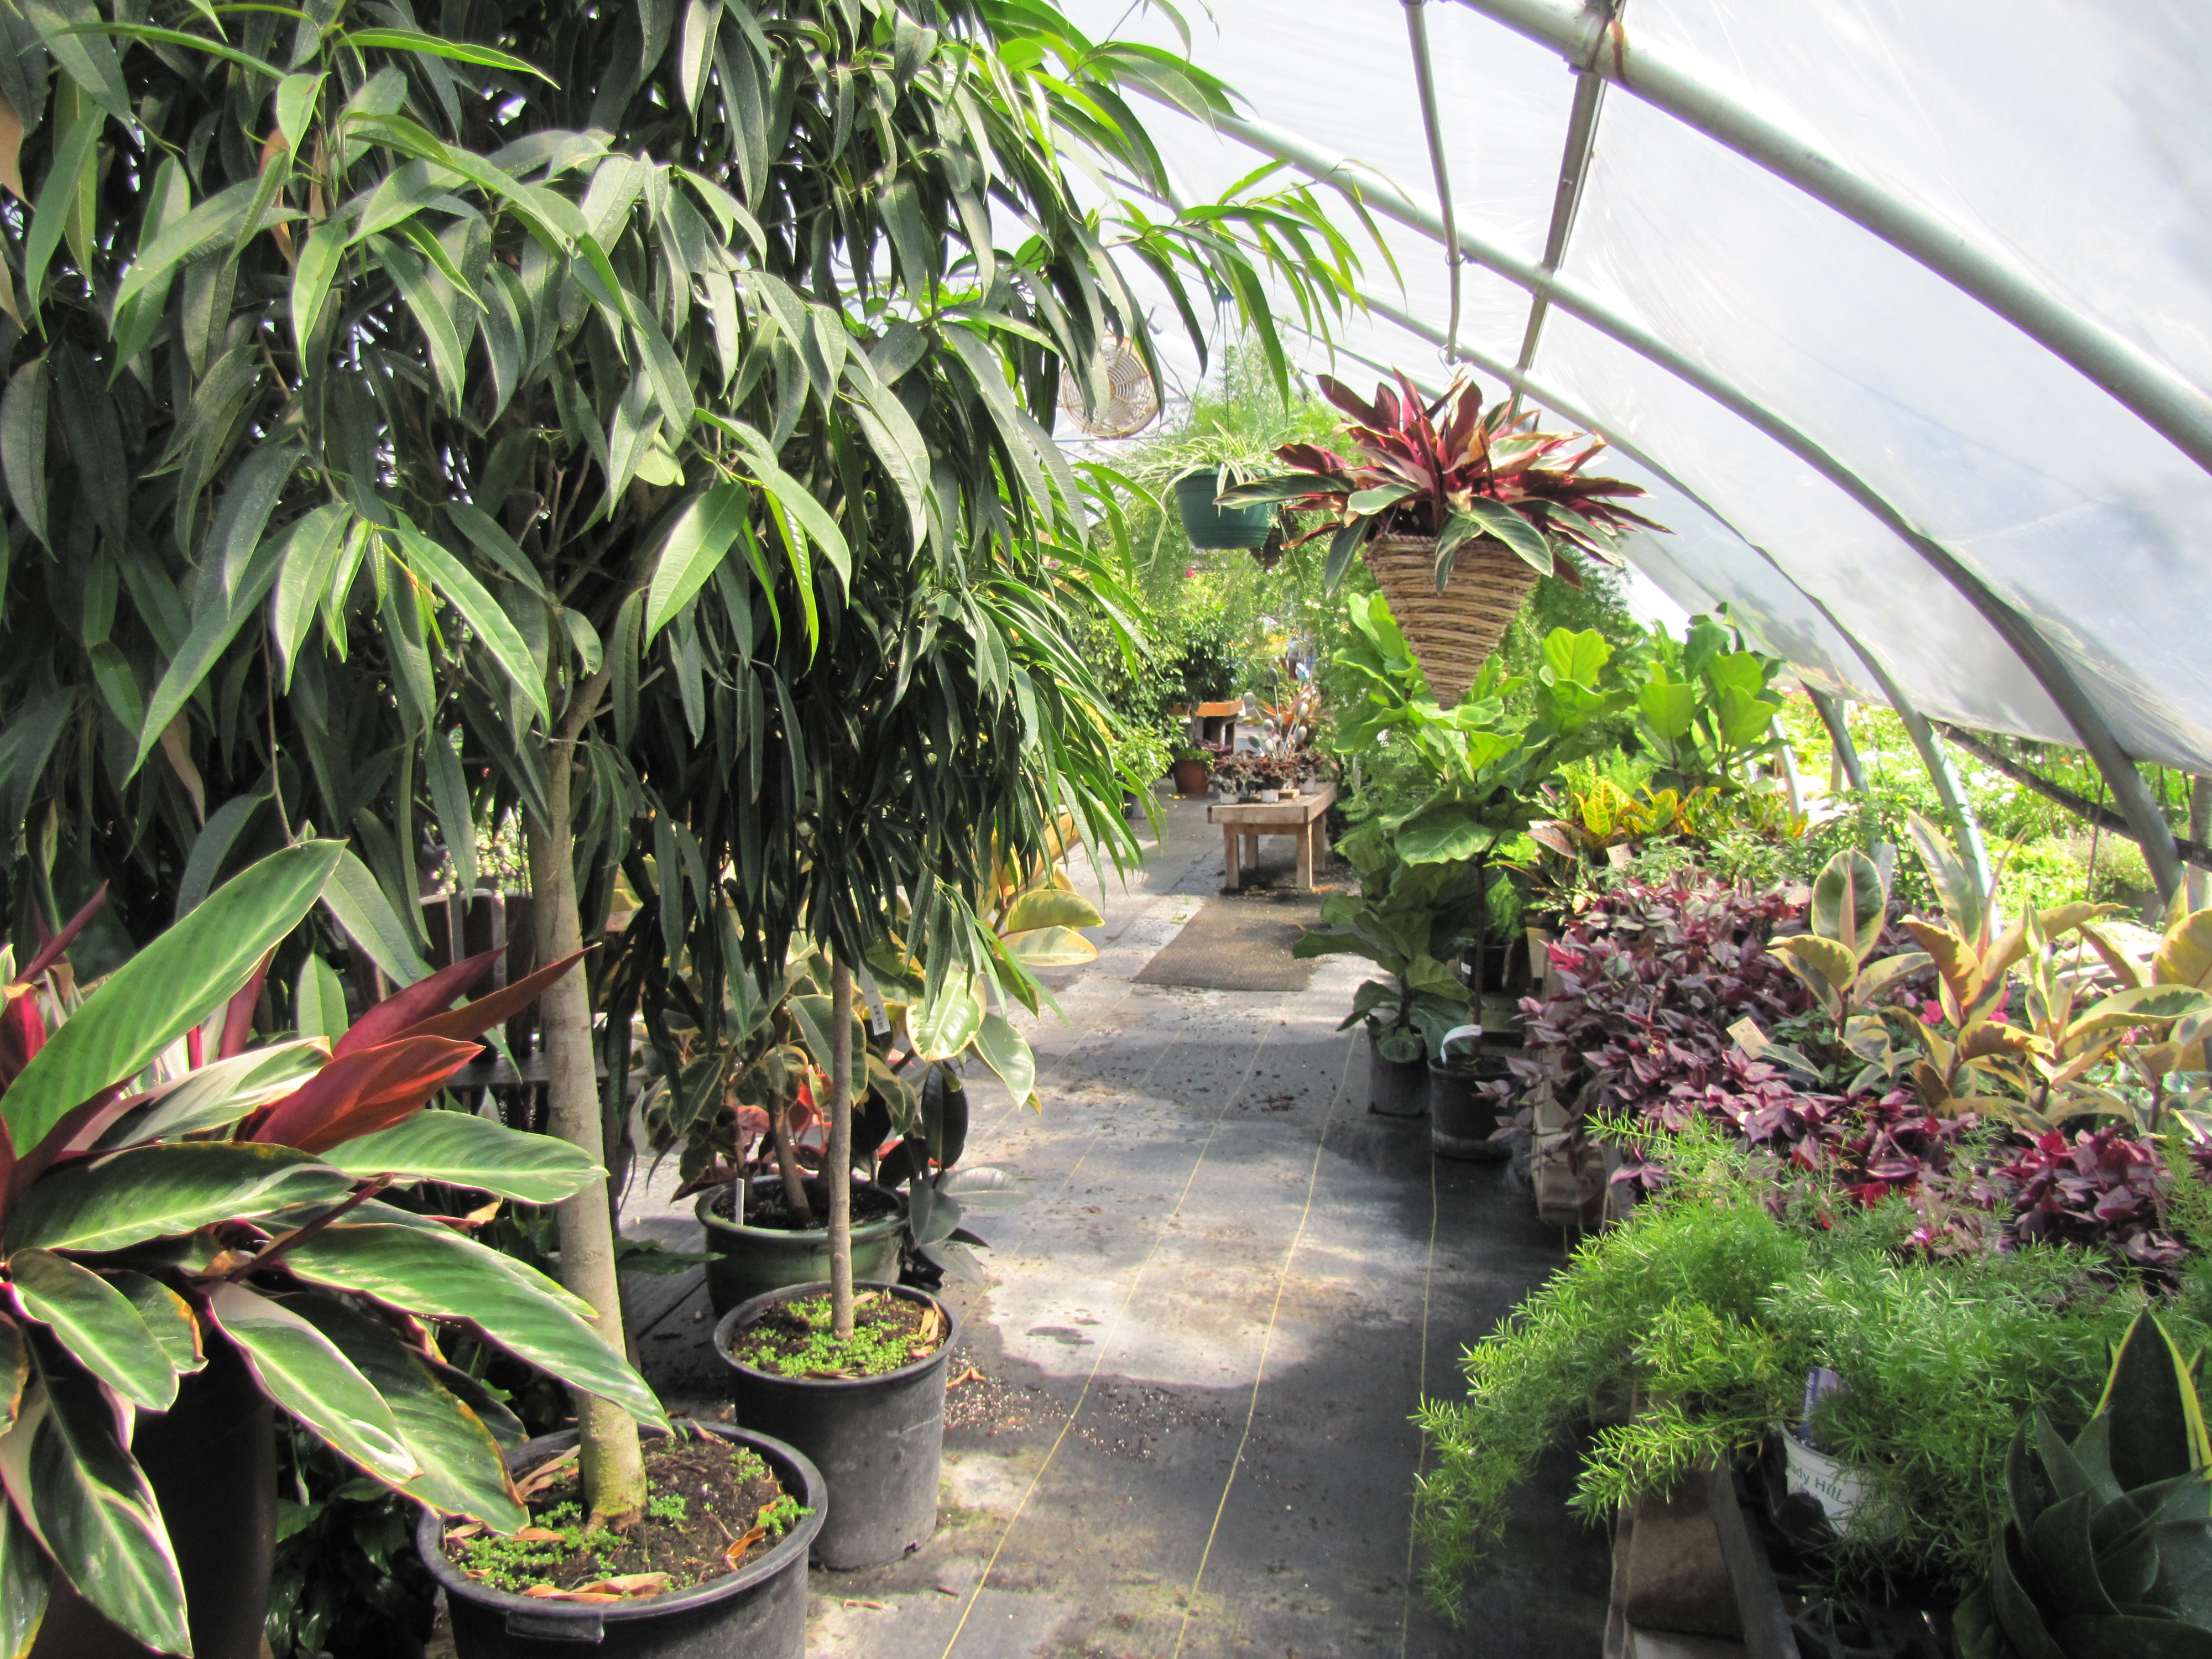 Houseplants - Shady Hill Greenhouses on floral greenhouse, botany greenhouse, snow greenhouse, outdoor greenhouse, bonsai greenhouse, gardening greenhouse, white greenhouse, horticulture greenhouse, conservatory greenhouse, tree greenhouse, green greenhouse, indoor greenhouse, vegetable greenhouse, plants greenhouse, spring greenhouse, weed greenhouse, tropical greenhouse, container greenhouse, nursery greenhouse, home greenhouse,